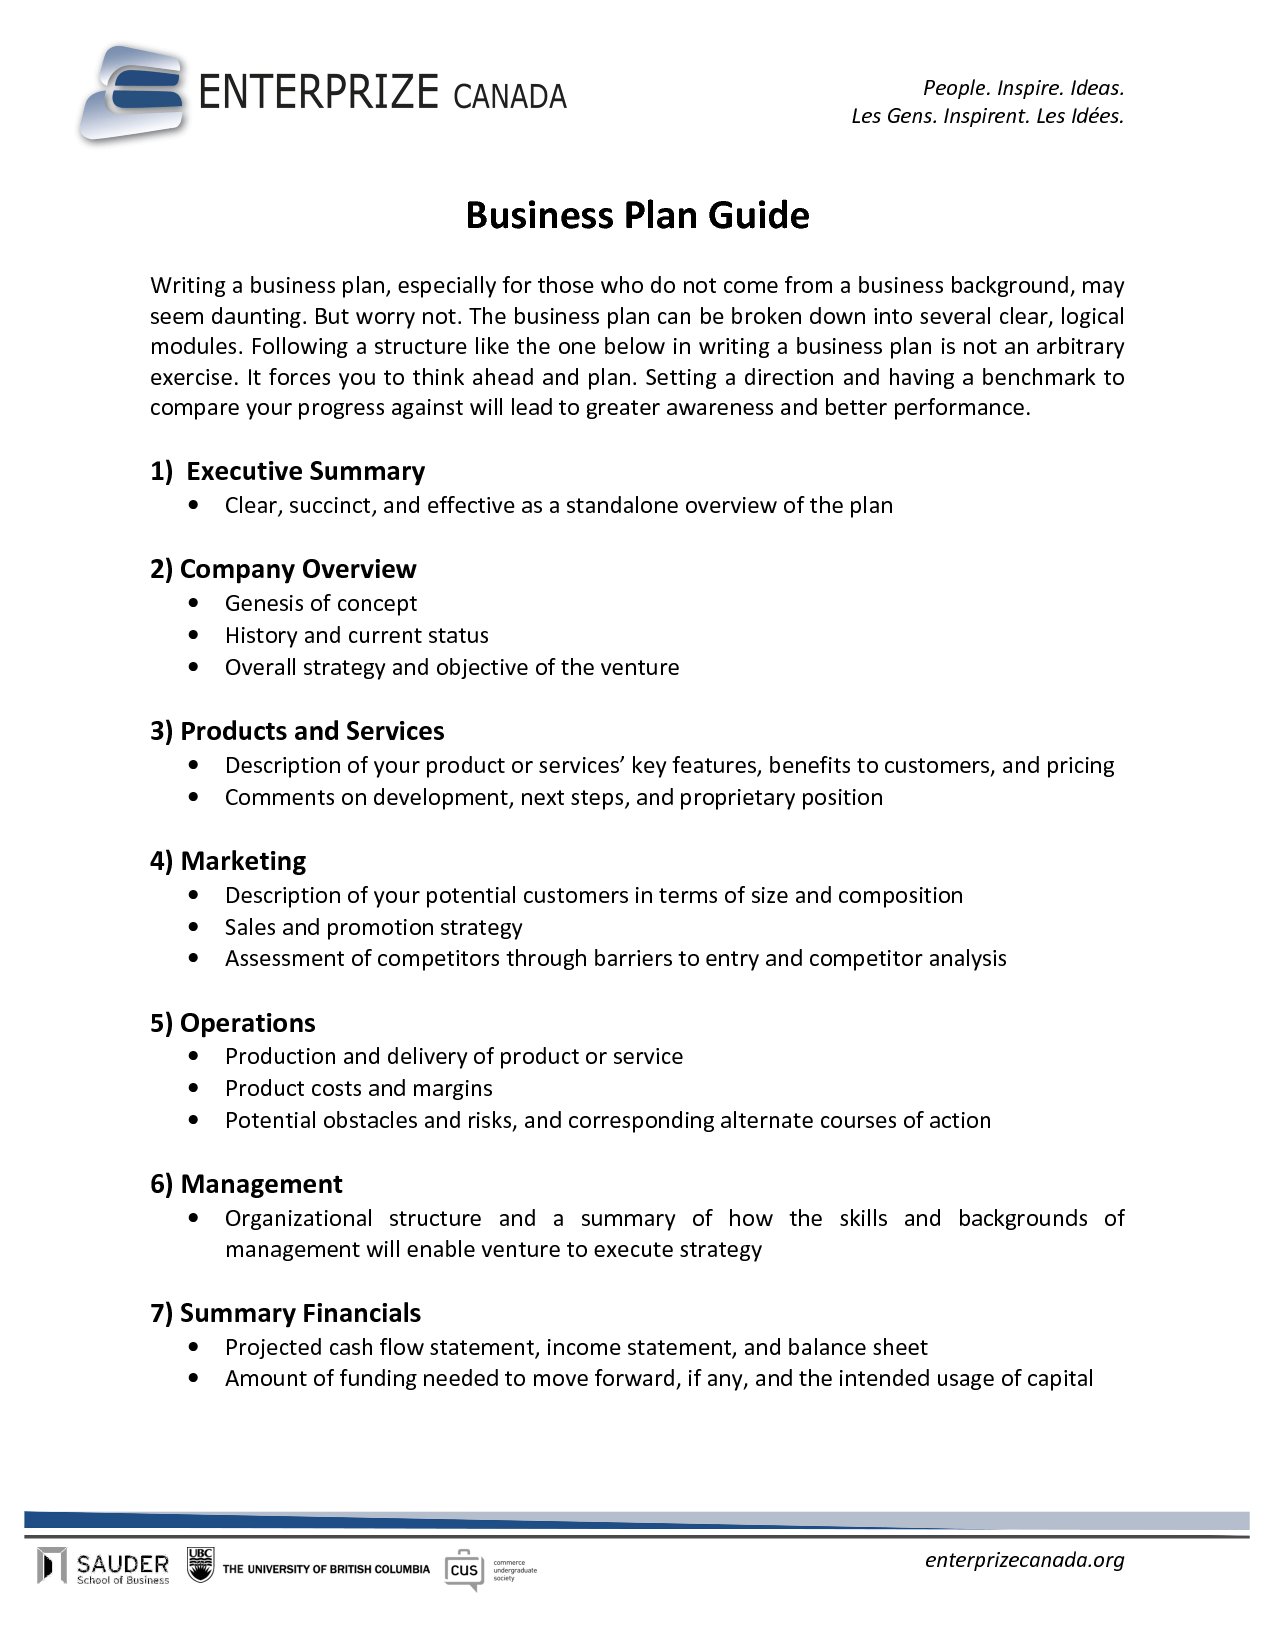 real estate business plan sample doc resume writing resume real estate business plan sample doc sample business plans and templates to printable business